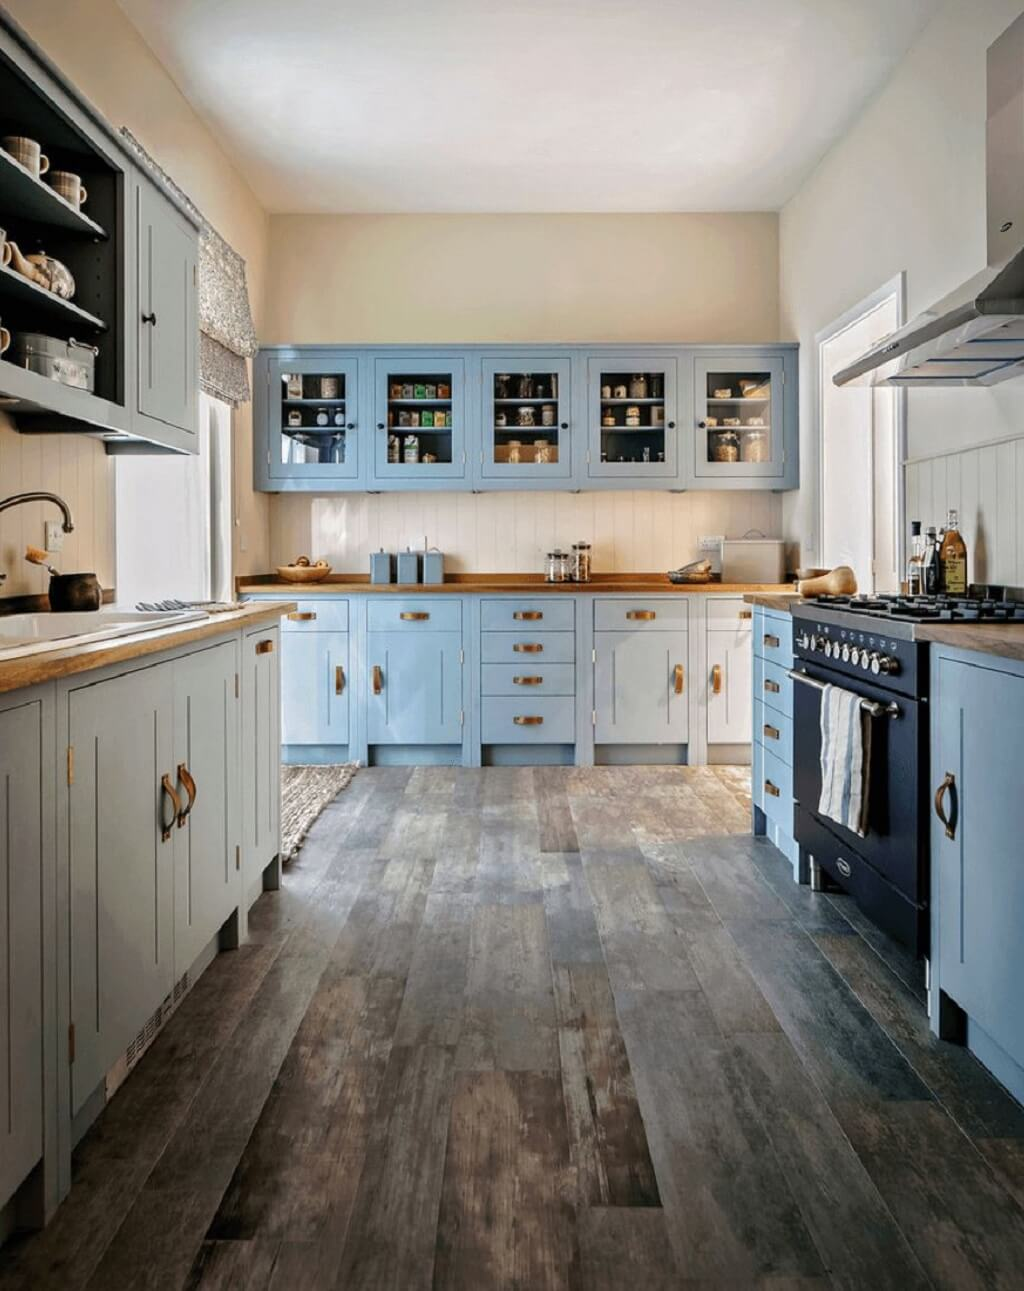 Best Farmhouse Kitchen Cabinet Ideas And Designs For - Blue and grey kitchen ideas